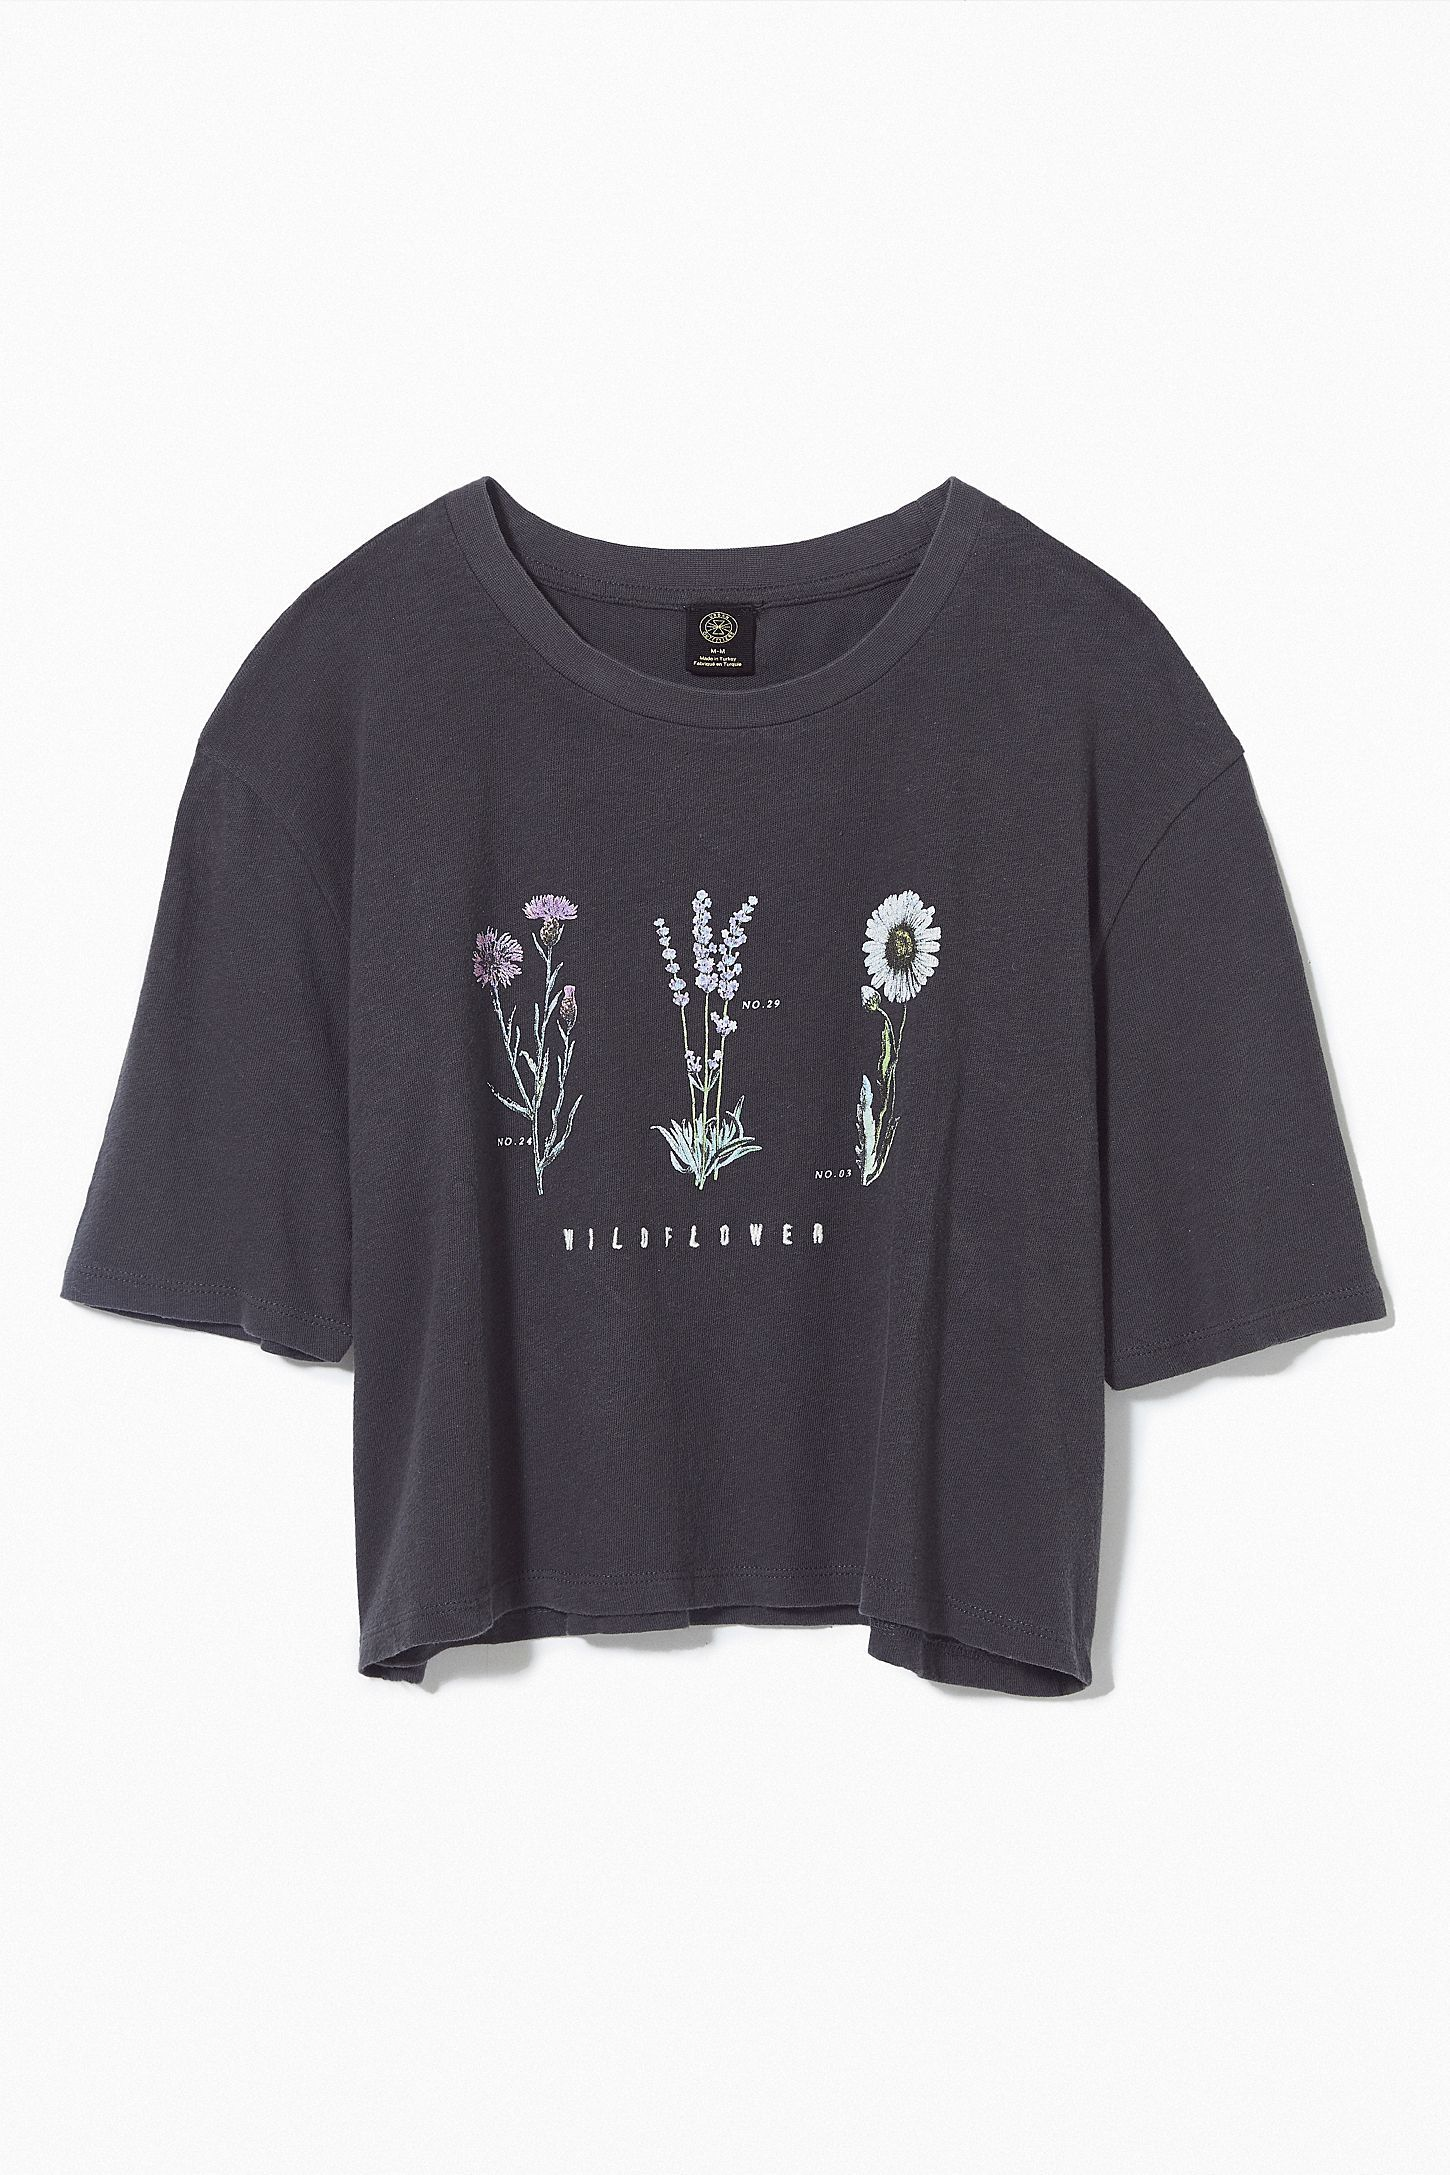 Embroidered Wildflower Cropped Top #cutecroptops